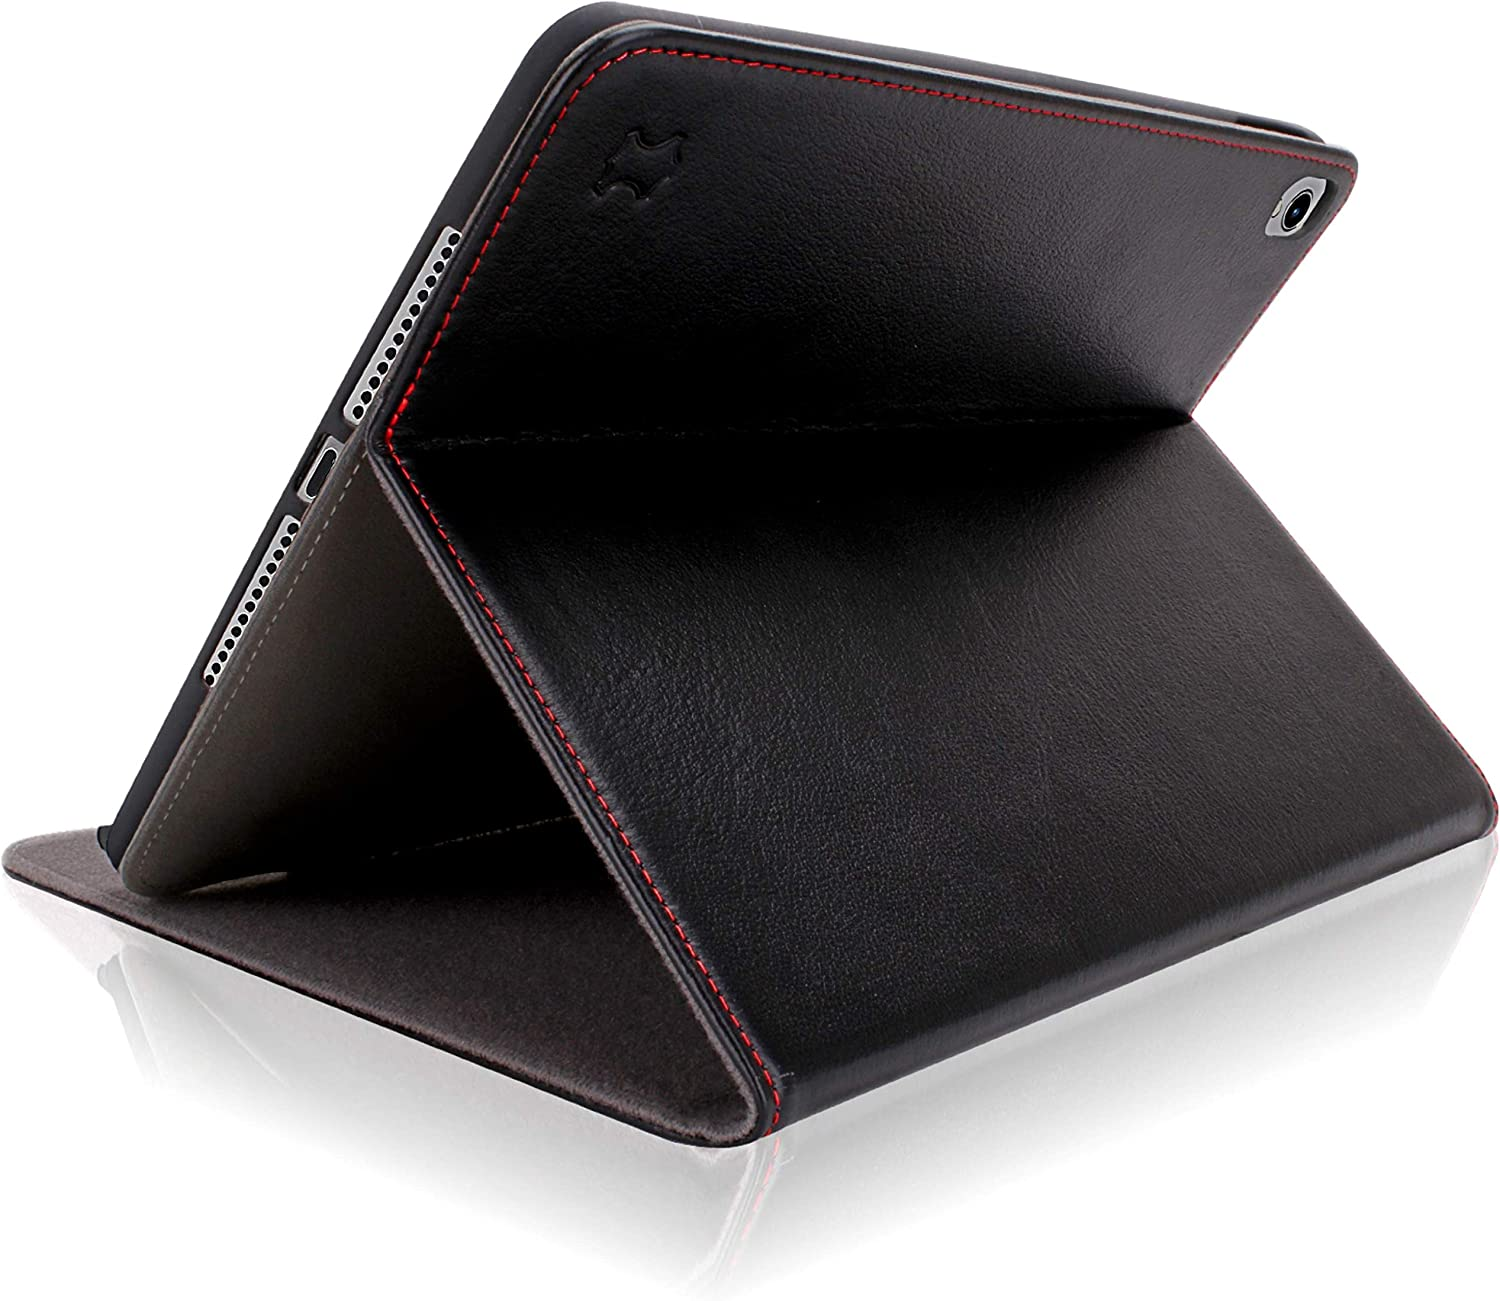 iPad Air 3 Case 2019 Leather with Pencil Holder - Best Multi-Angle Stand for 10.5 inch 3rd Generation Apple Air